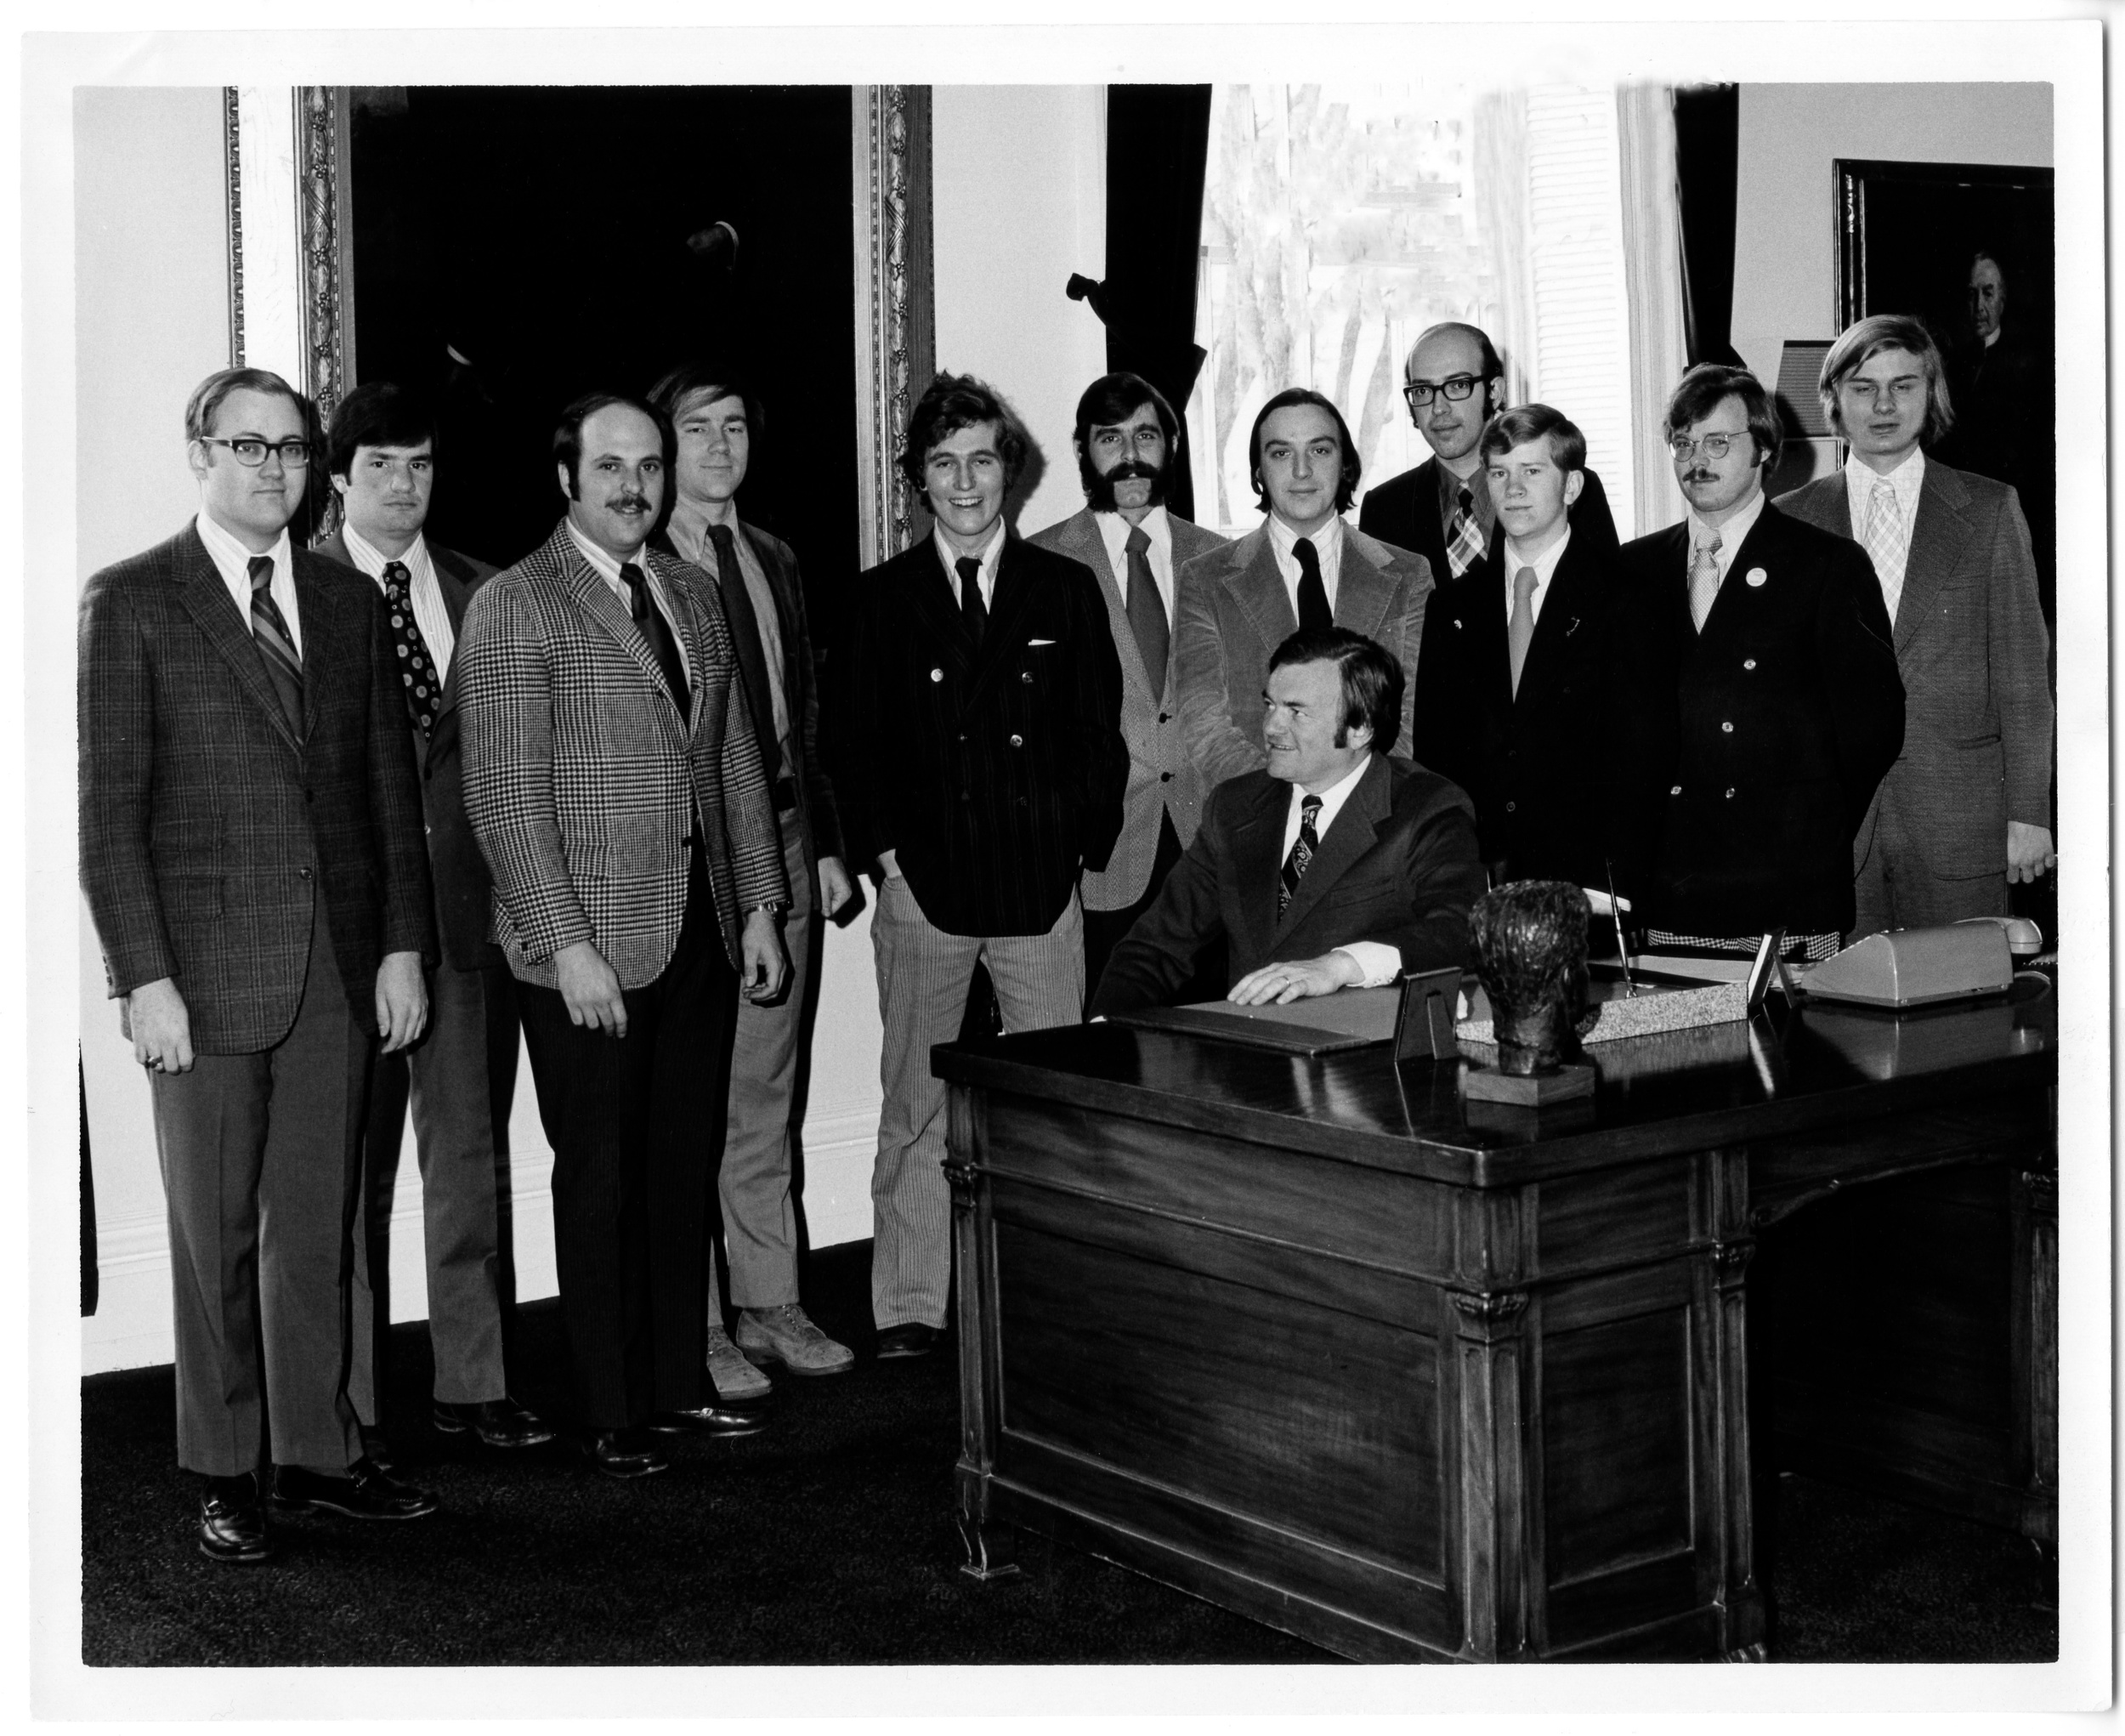 This is a picture of JD with Tom Salmon and other freshmen legislators under age 25 back in 1973.